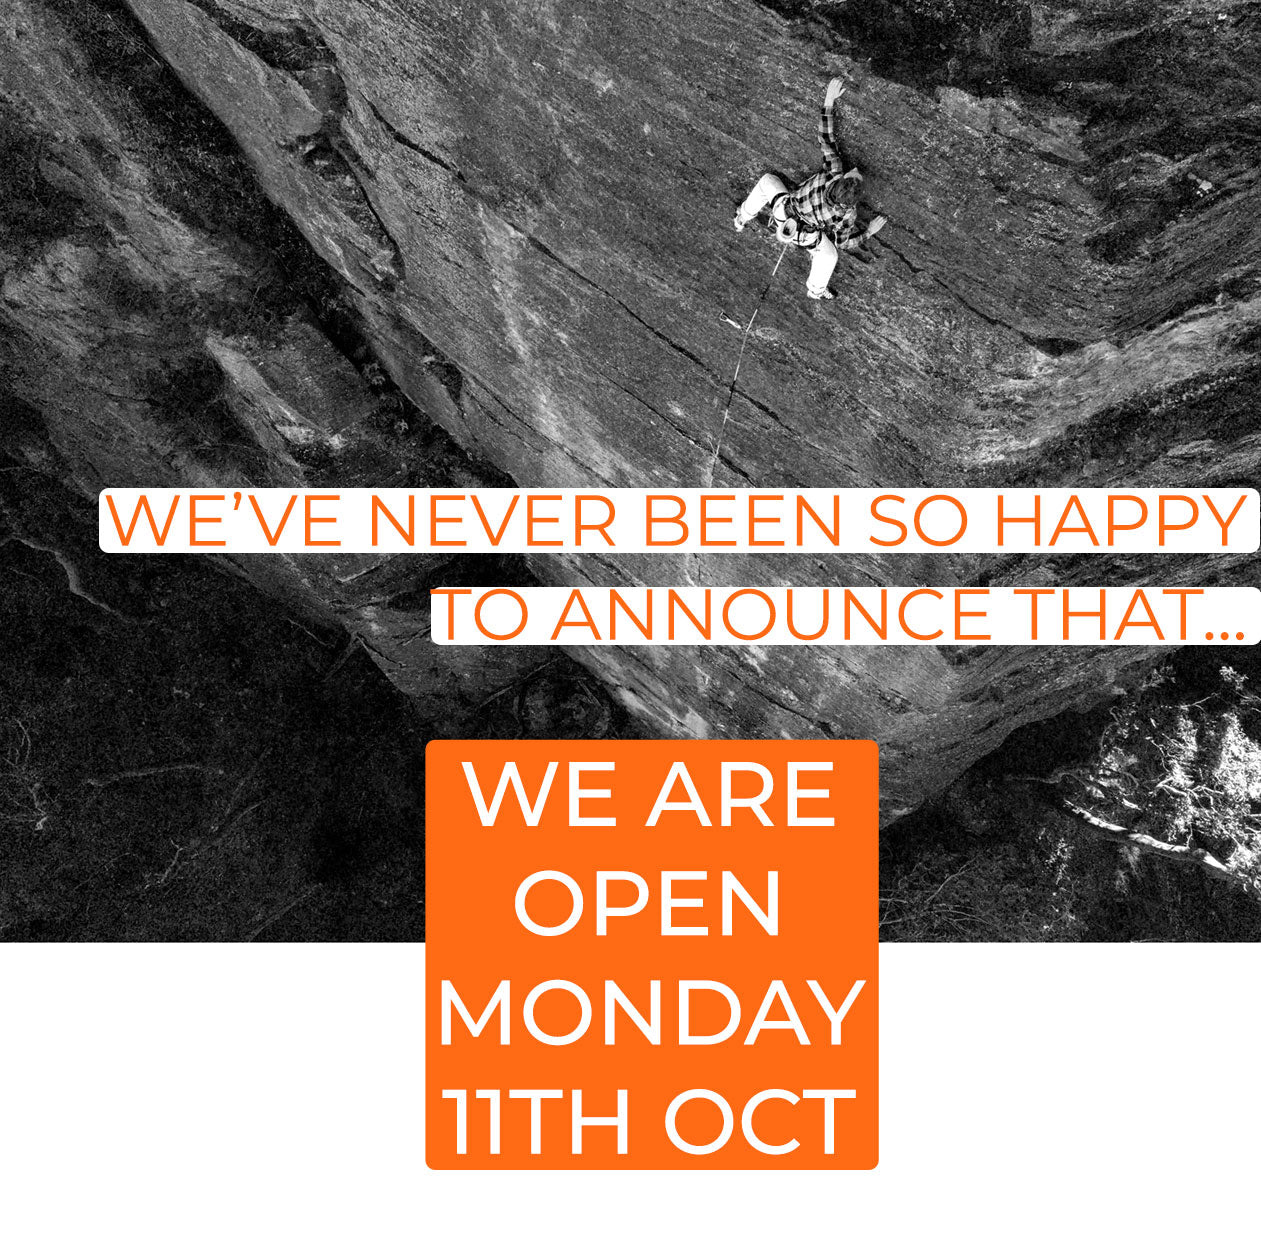 Mountain Equipment Sydney is opening Monday 11th October following new covid lockdowns